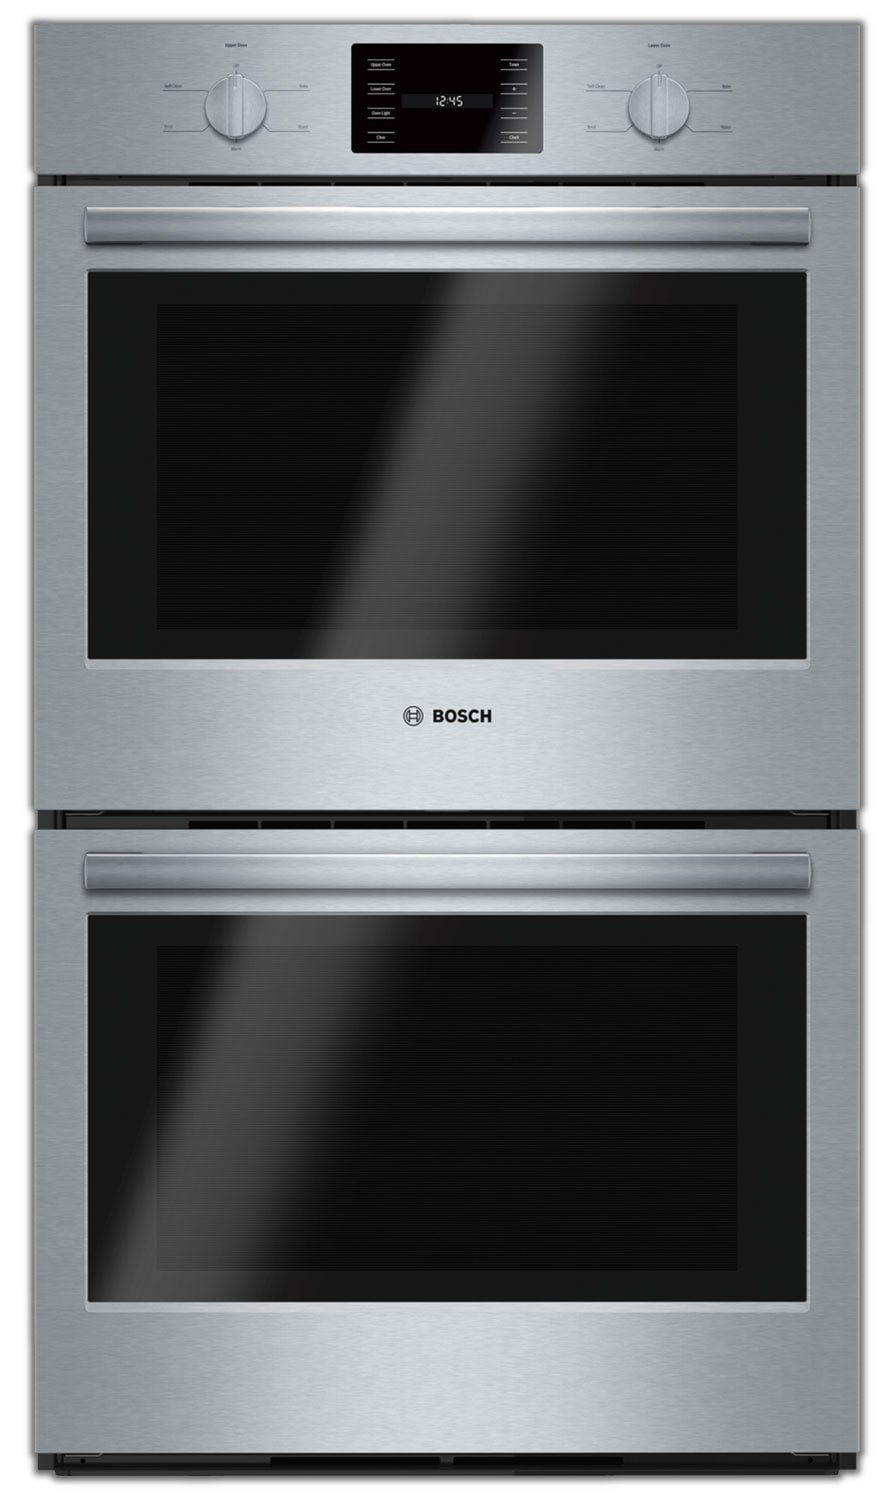 Cooking Products - Bosch Stainless Steel Double Wall Oven (9.2 Cu. Ft.) - HBL5551UC